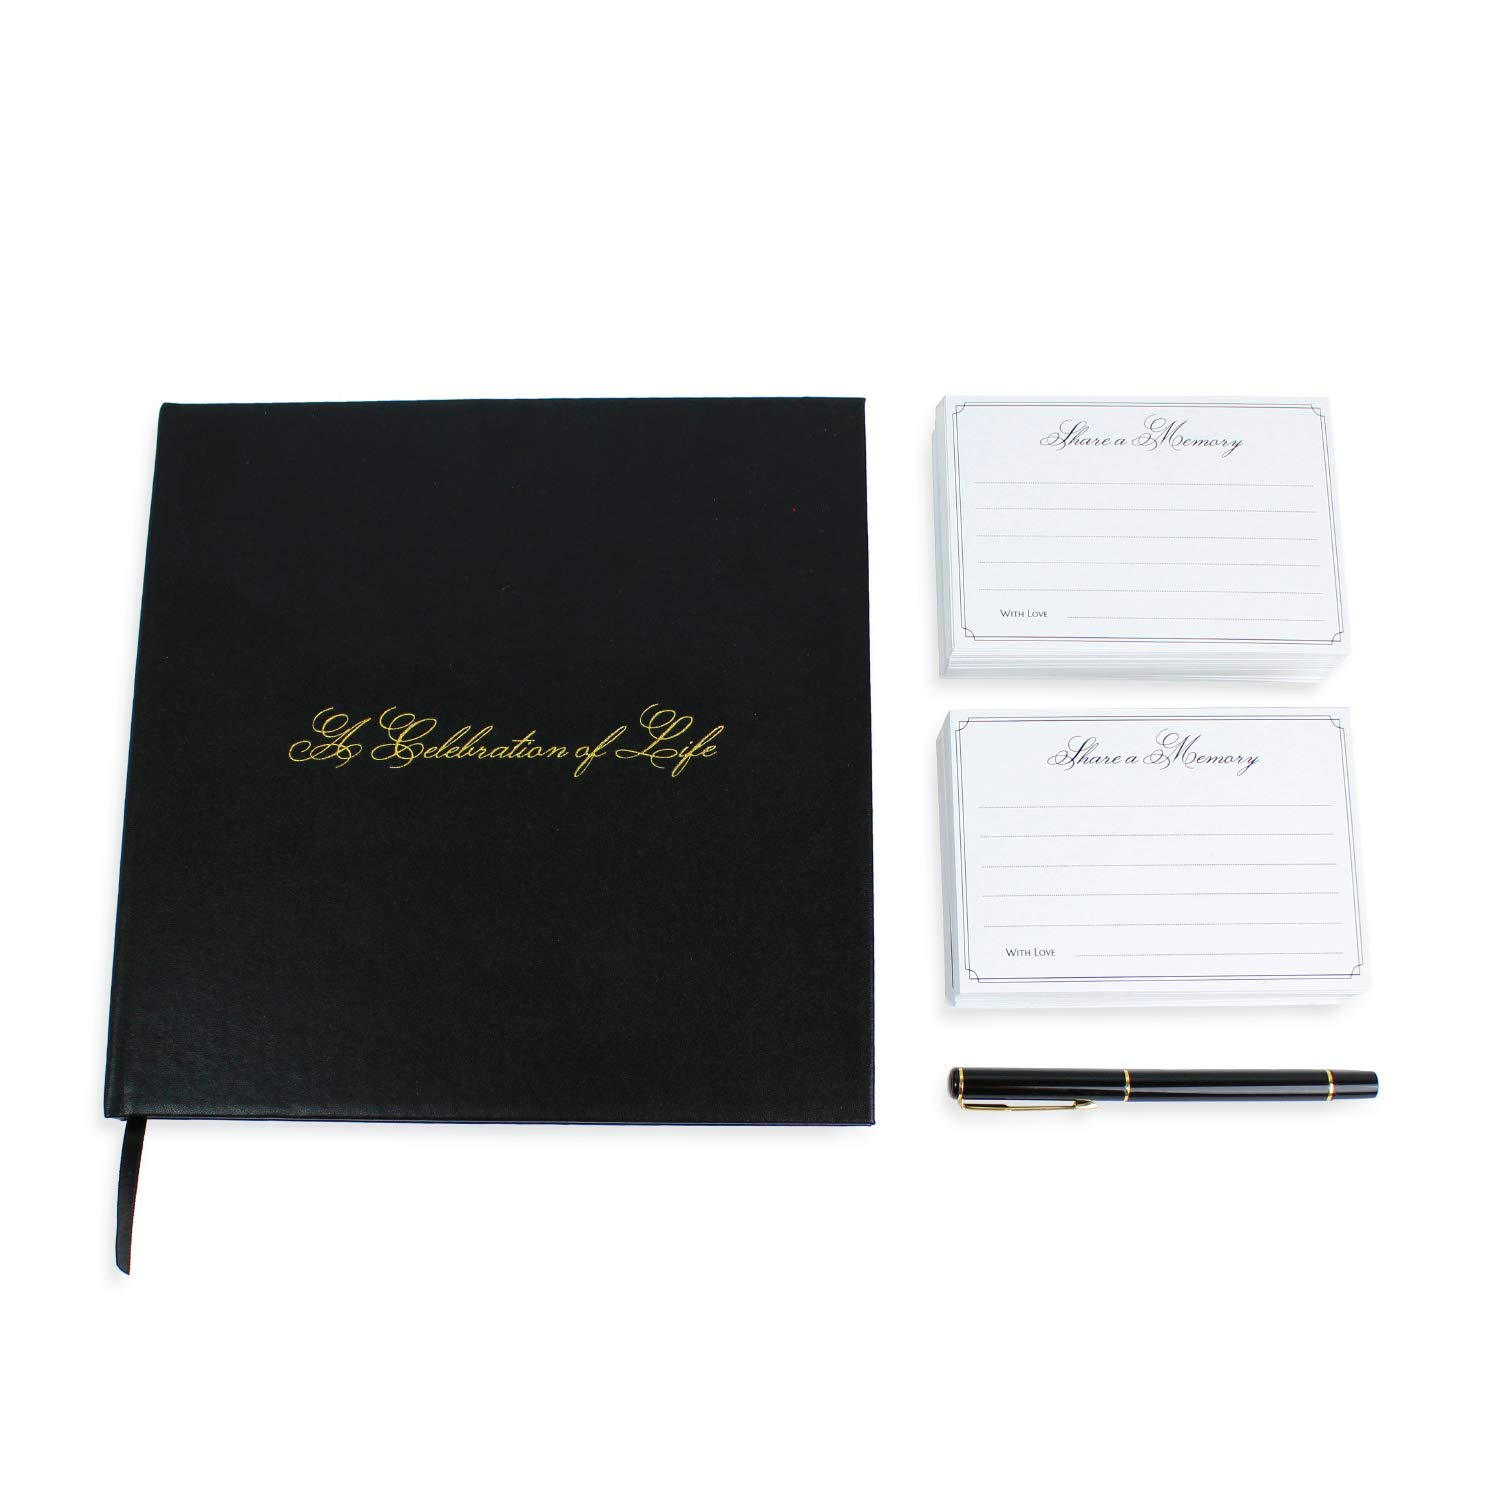 A Celebration of Life 96 Page Funeral Guest Book with Professional Picture Frame, Memorial Cards, and Gold Pen (Black Leather) by TopHat Technologies